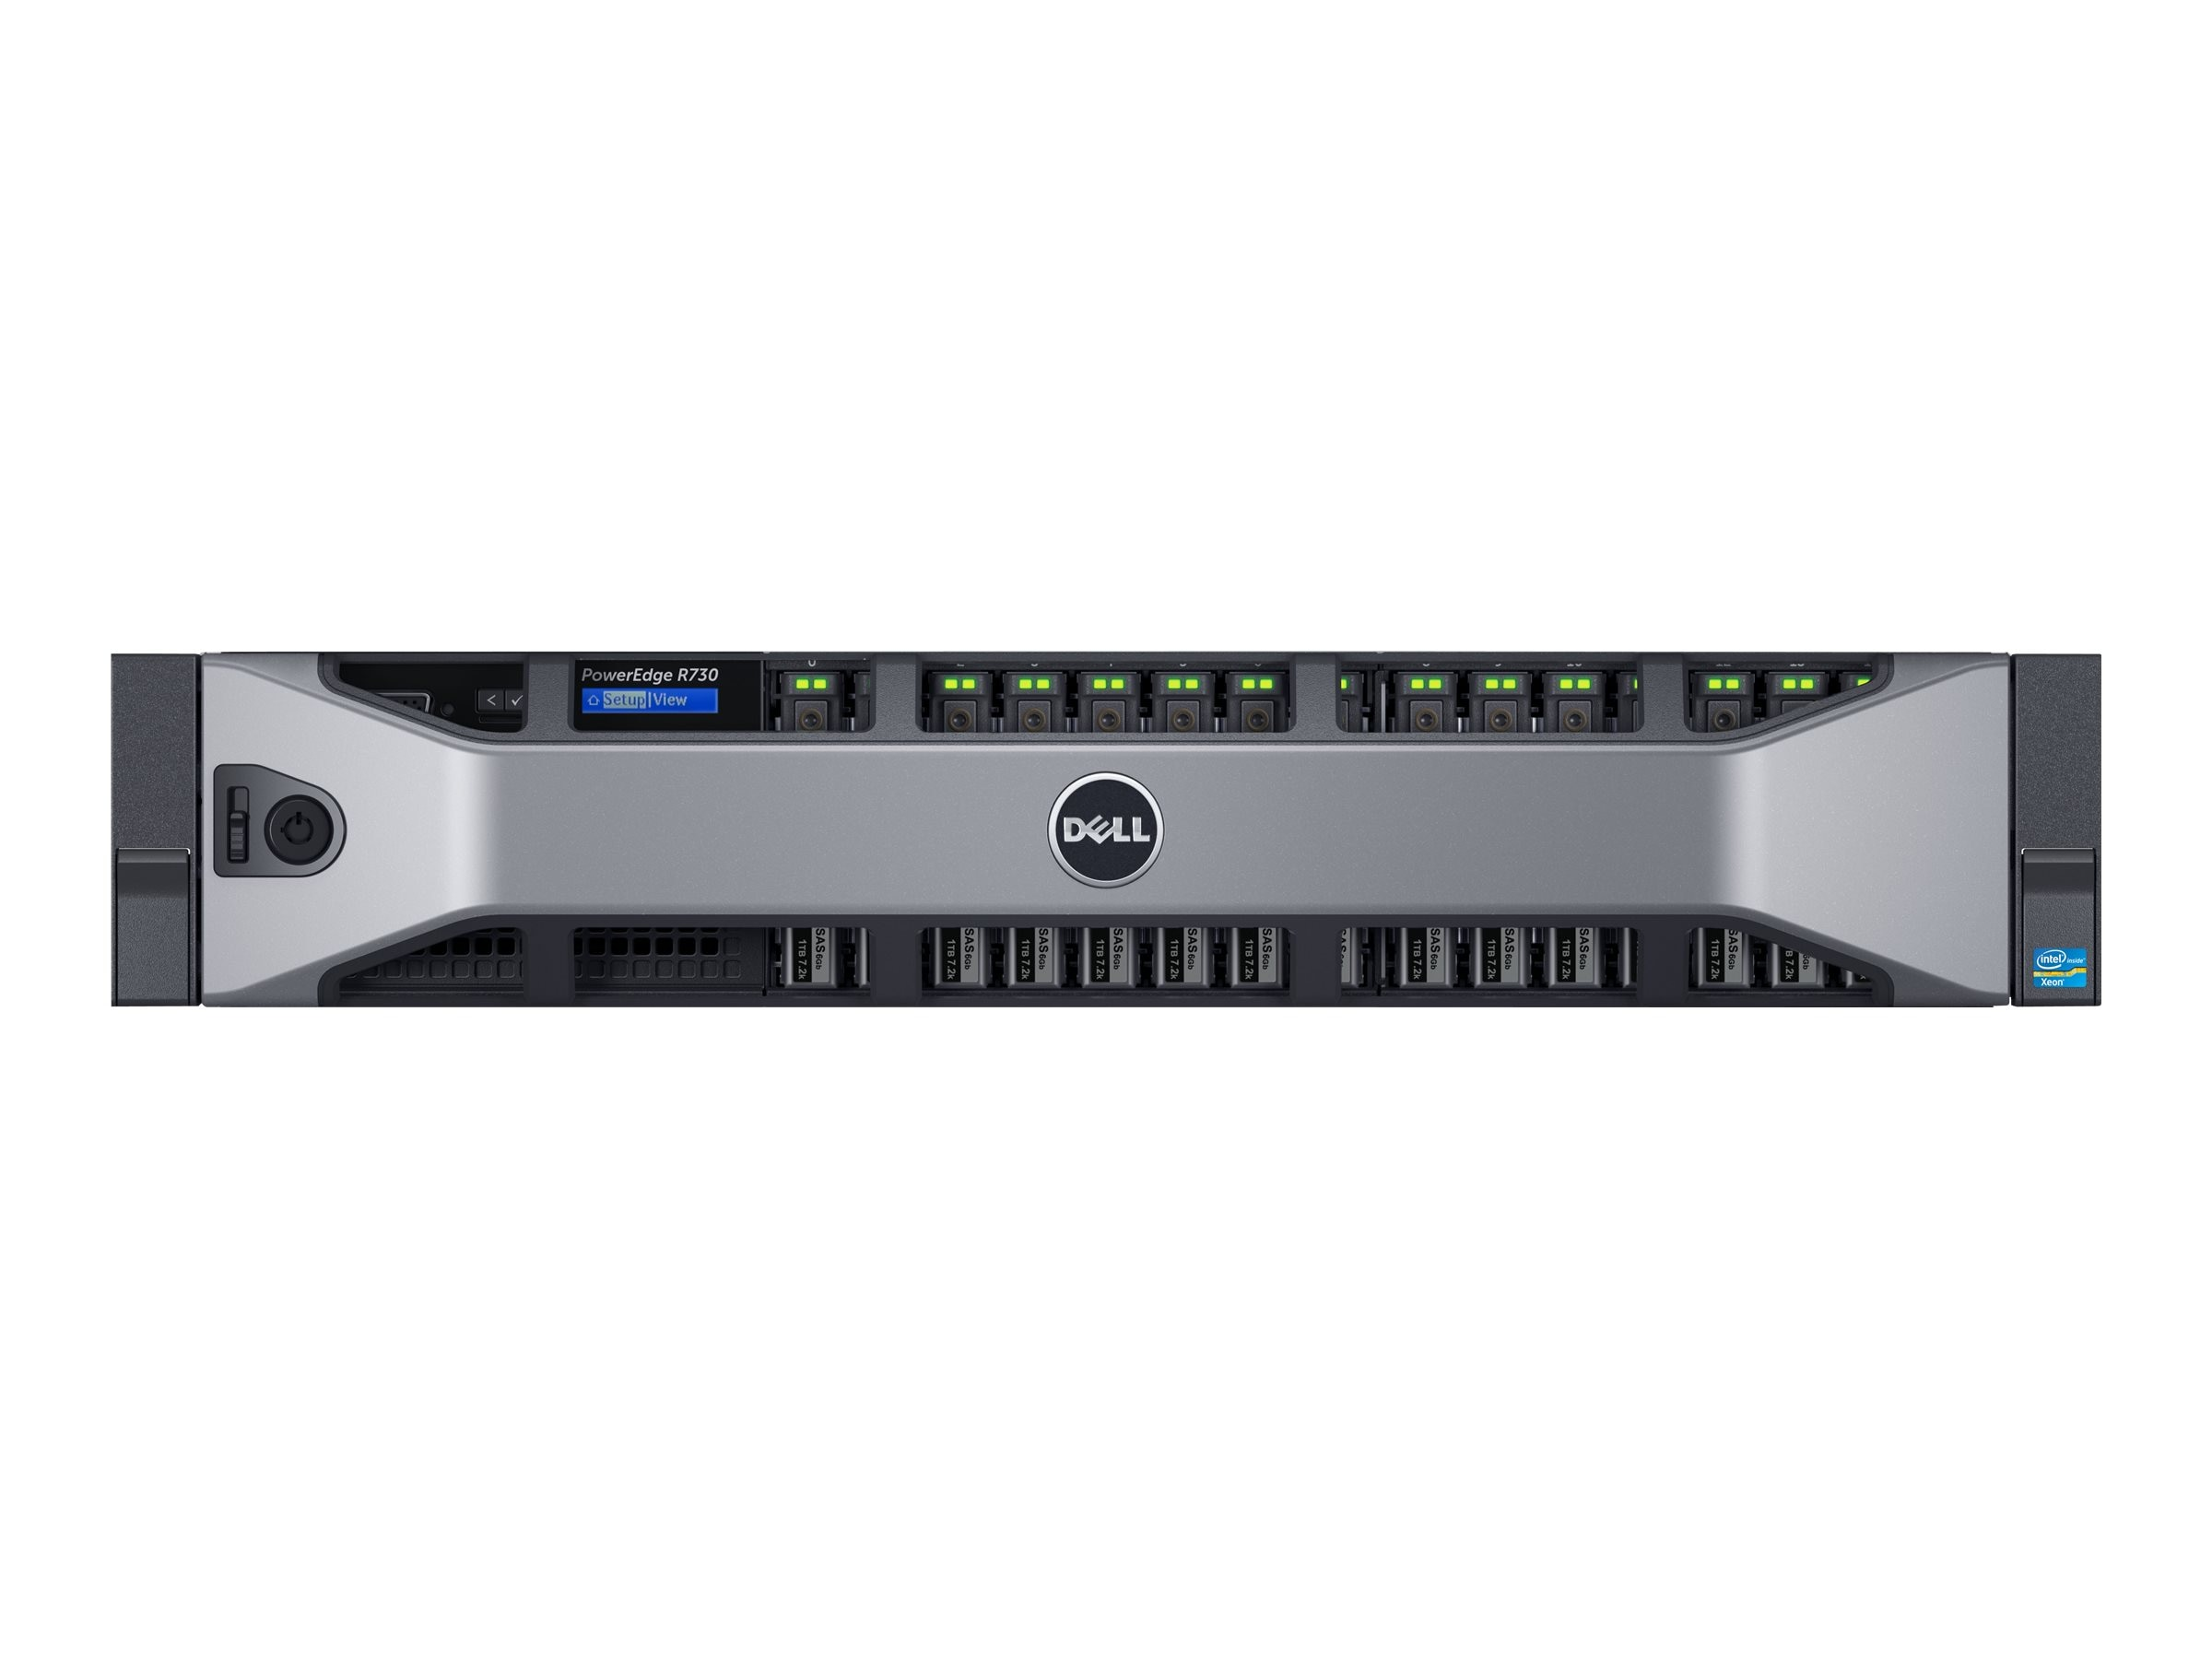 Dell PowerEdge R730 Intel 2.4GHz Xeon, 463-7662